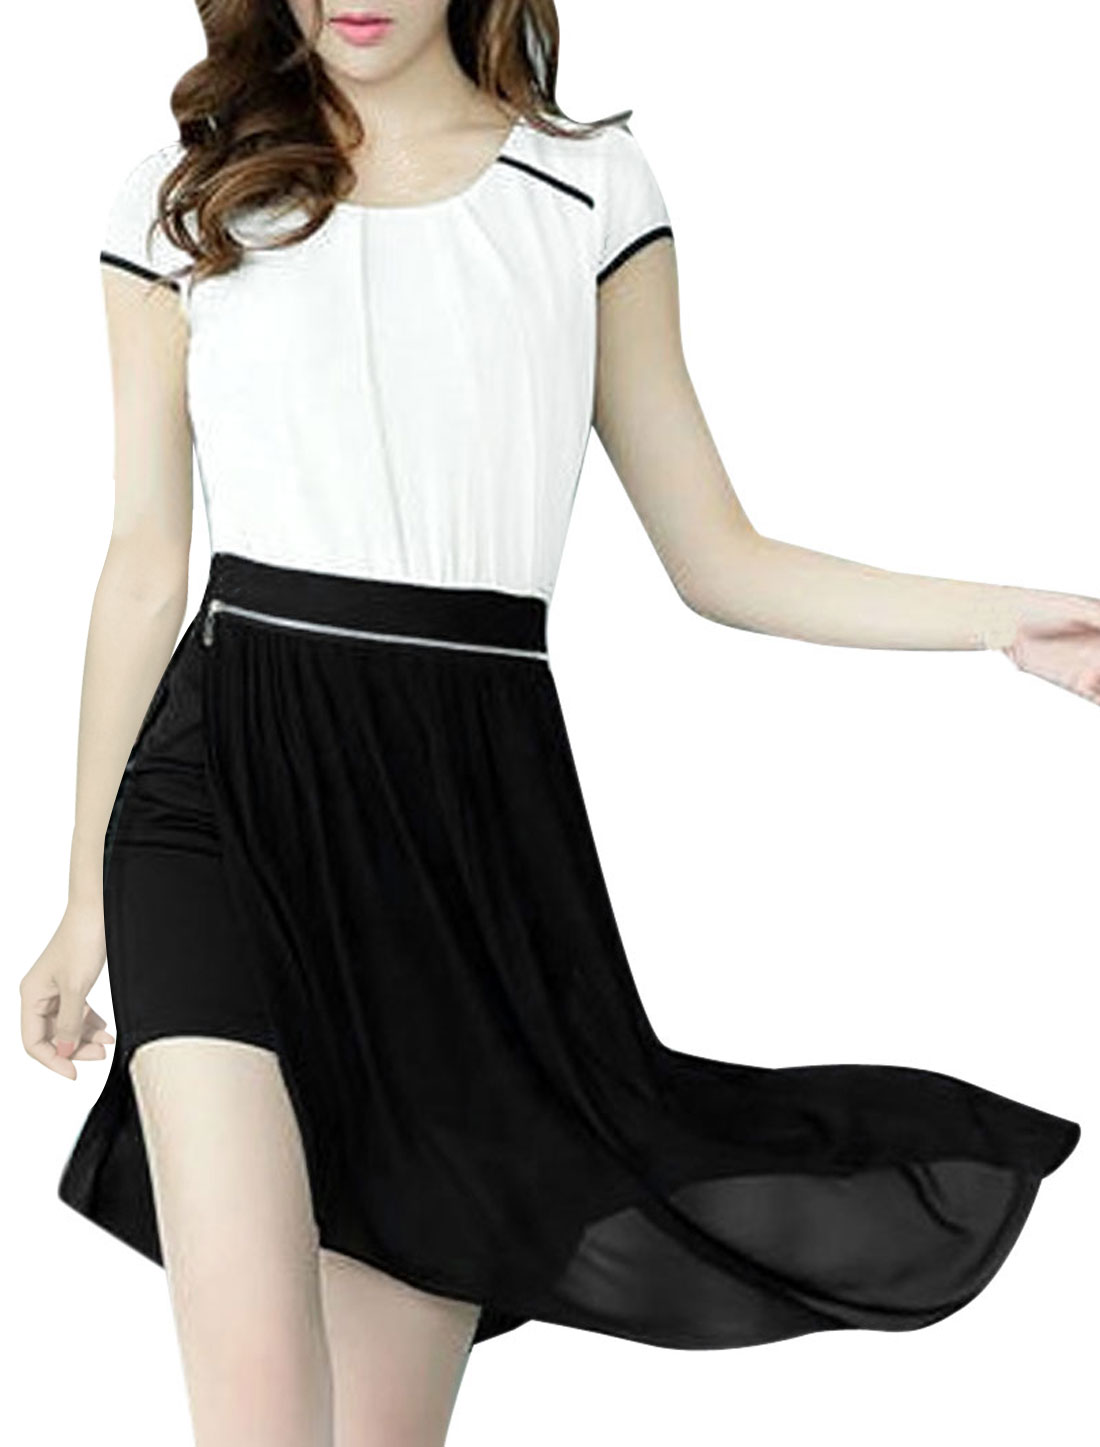 Women Chic Conceal Zipper Side Irregular Hem Black White Casual Dress XS